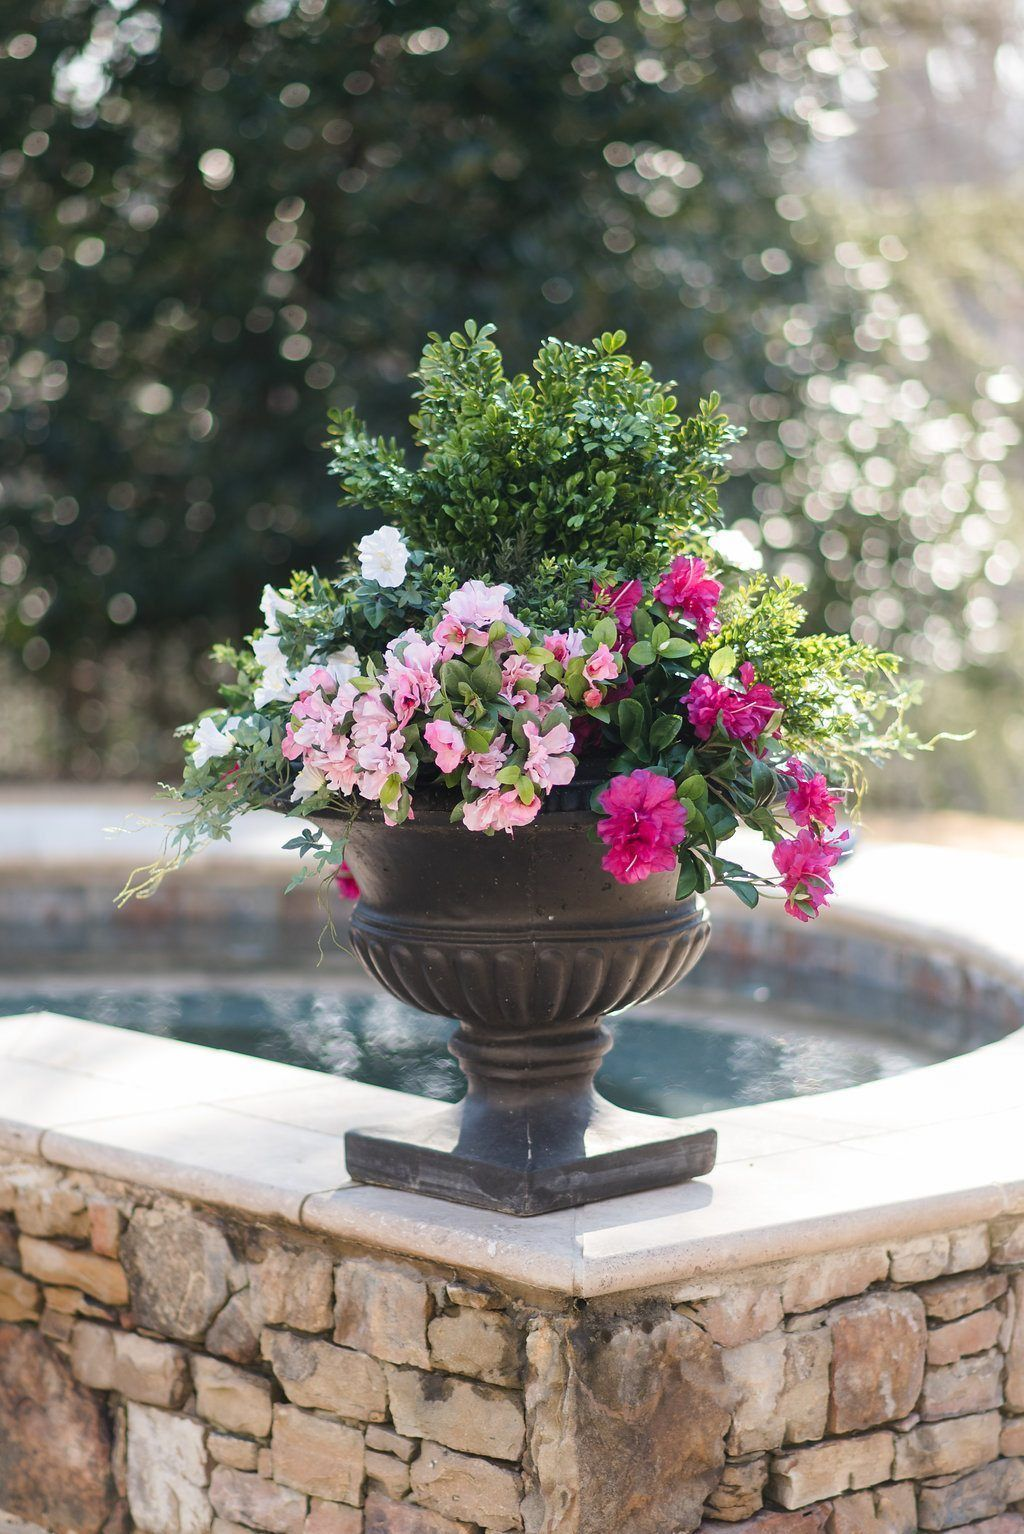 Plastic Boxwoods And Silk Azalea Plants Used In Black Flower Container By Pool Spa Fake Potted Plants Fake Flowers Artificial Flowers Outdoors